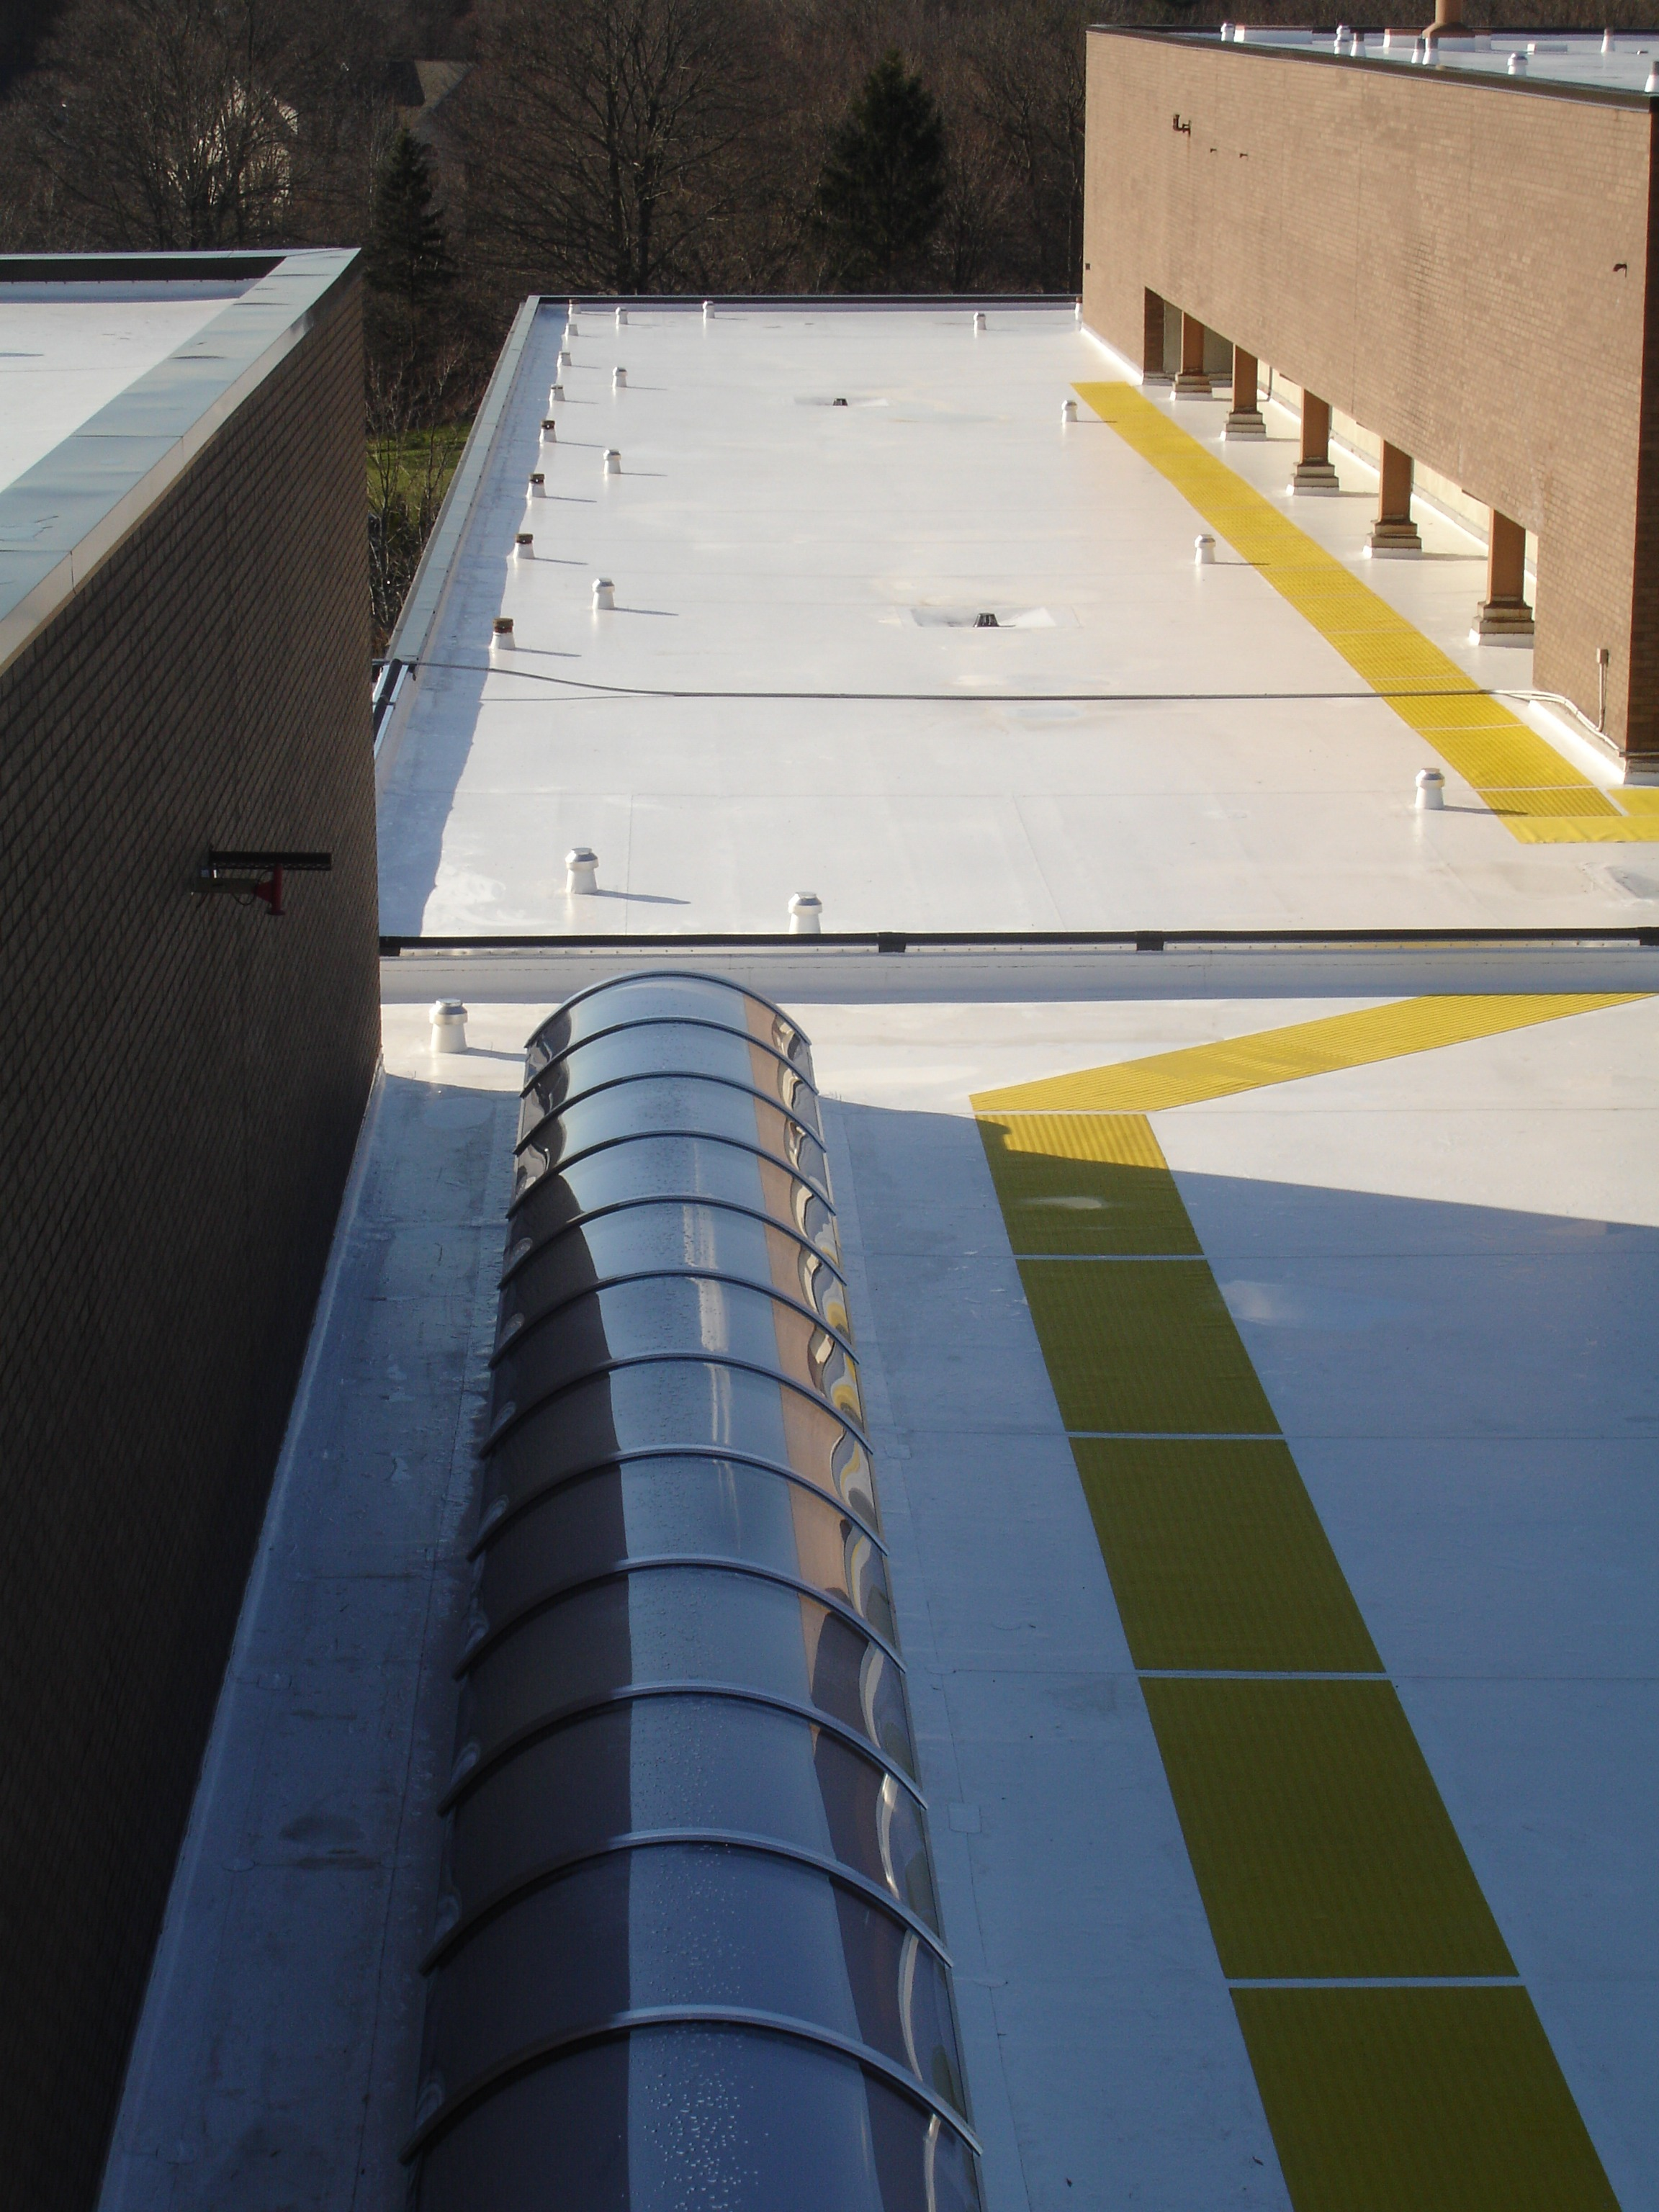 www.vanguardroofing.com walkpads eco freindly roof